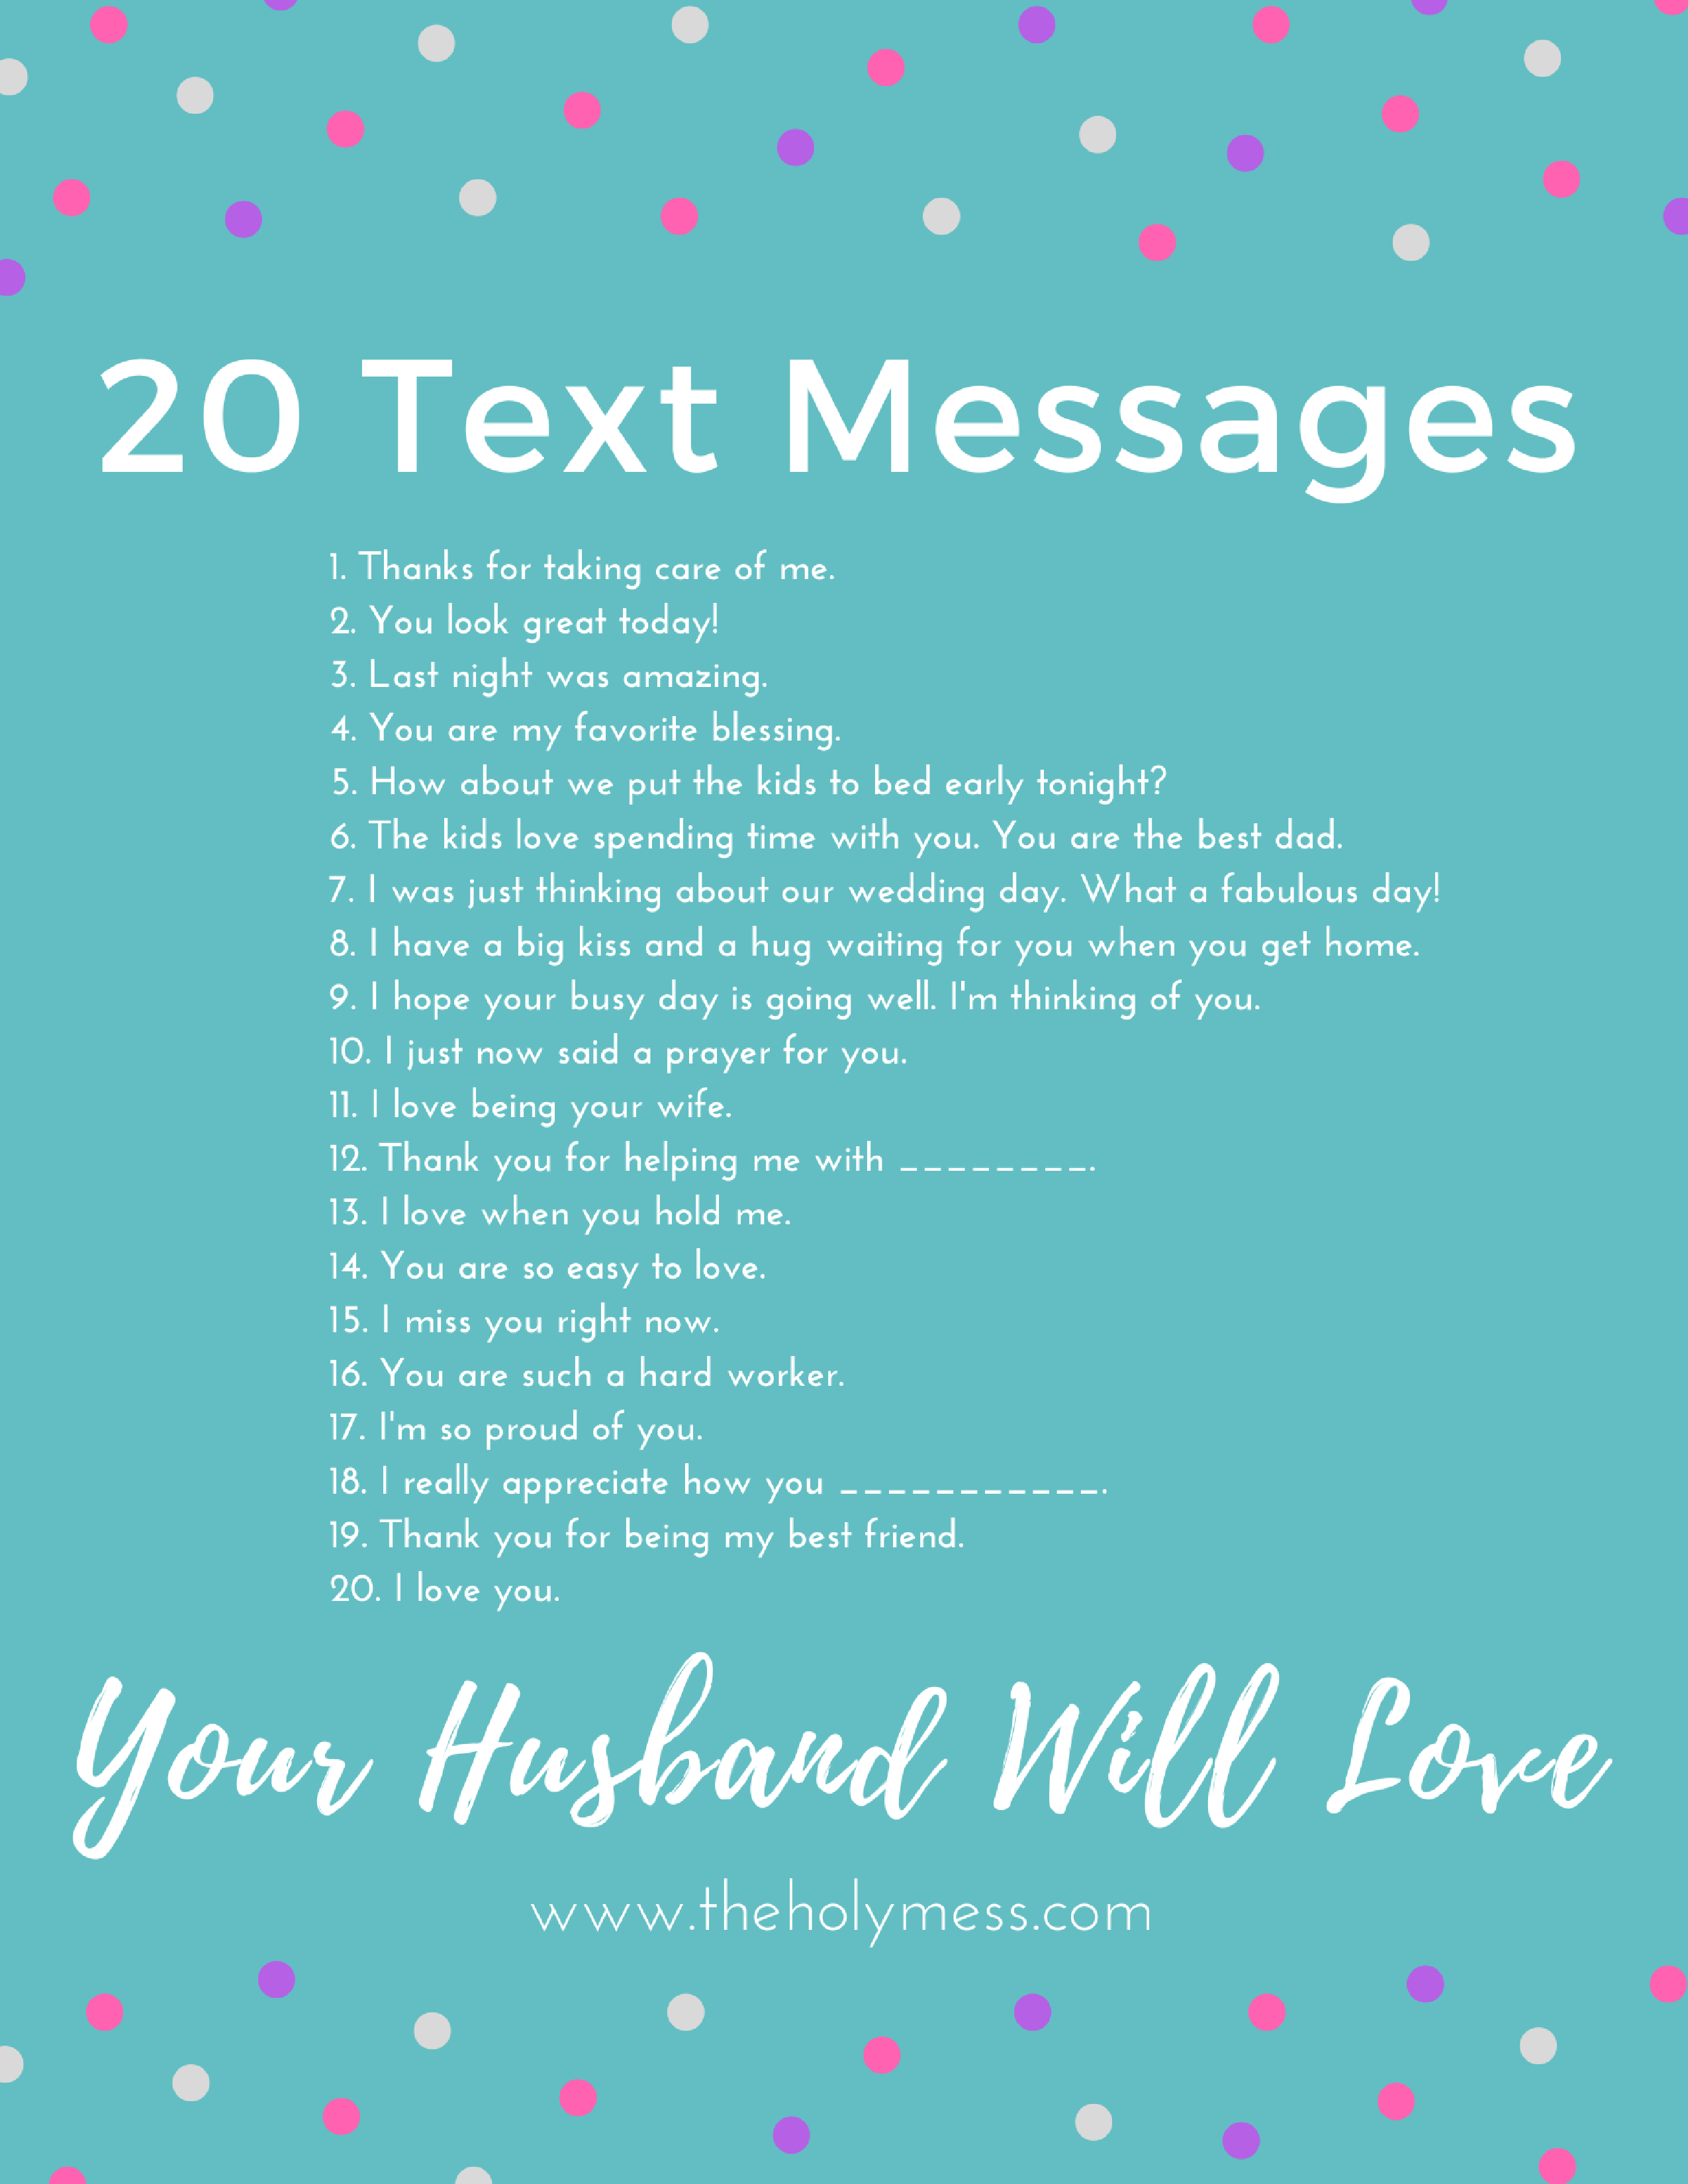 New Relationship Love Quotes: 20 Text Messages Your Husband Will Love